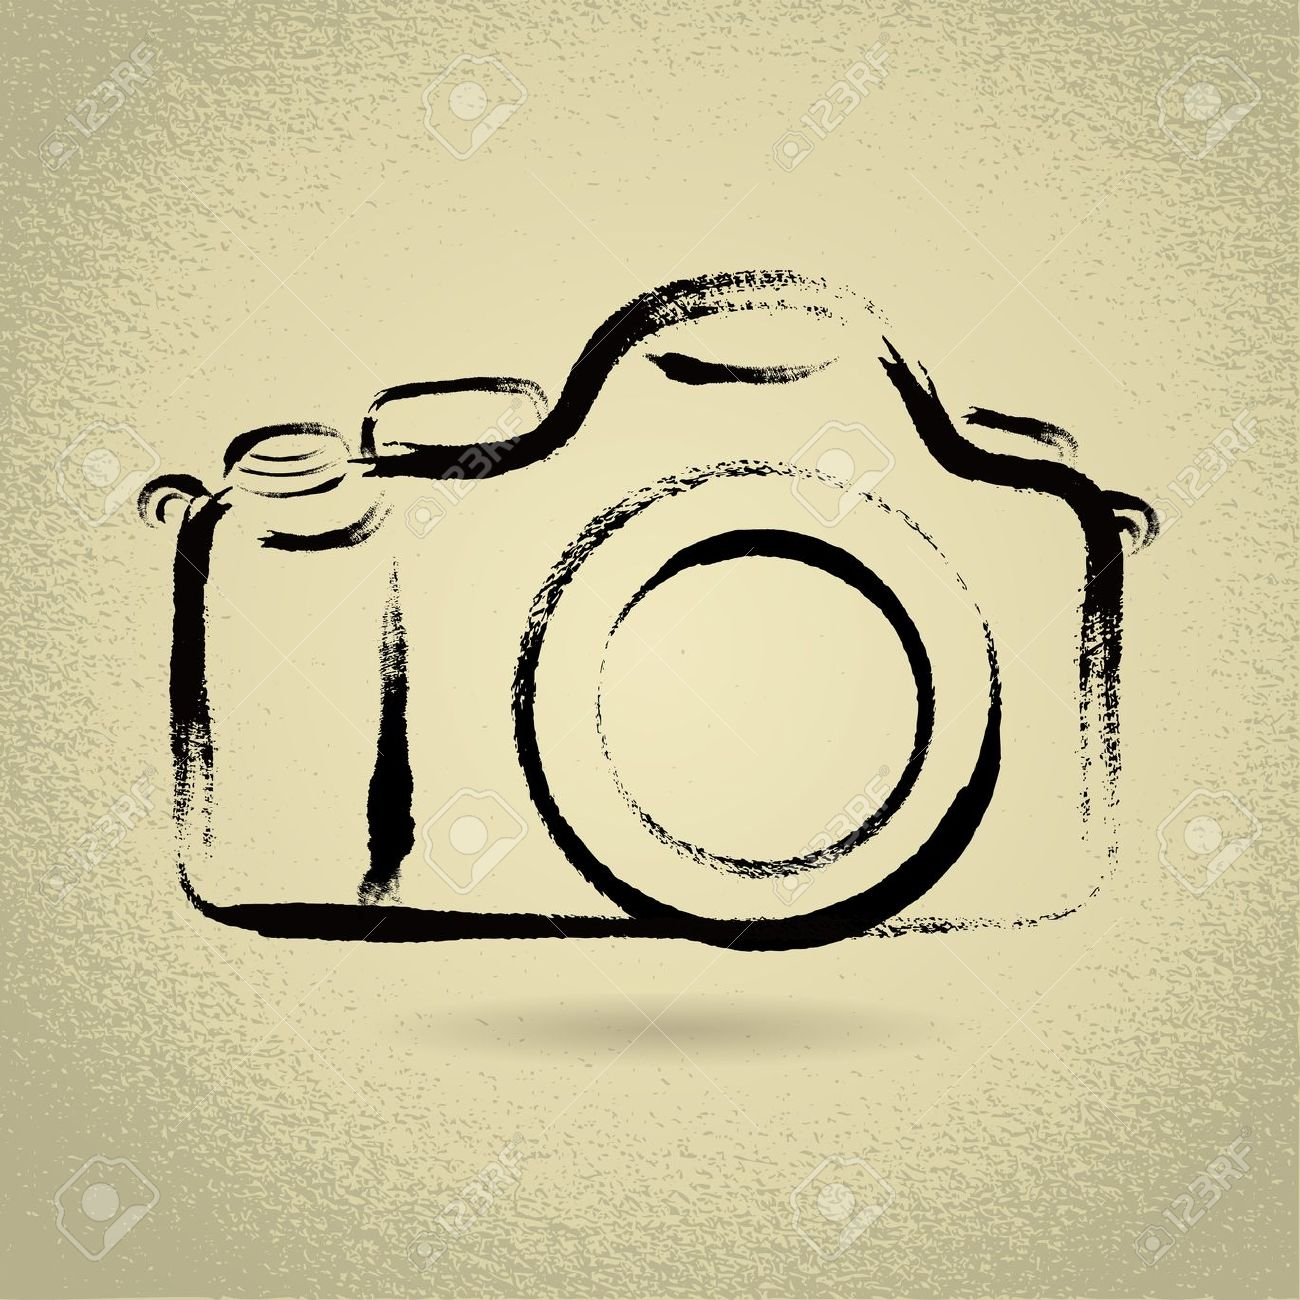 Photo clipart dslr. Wedding photography free collection